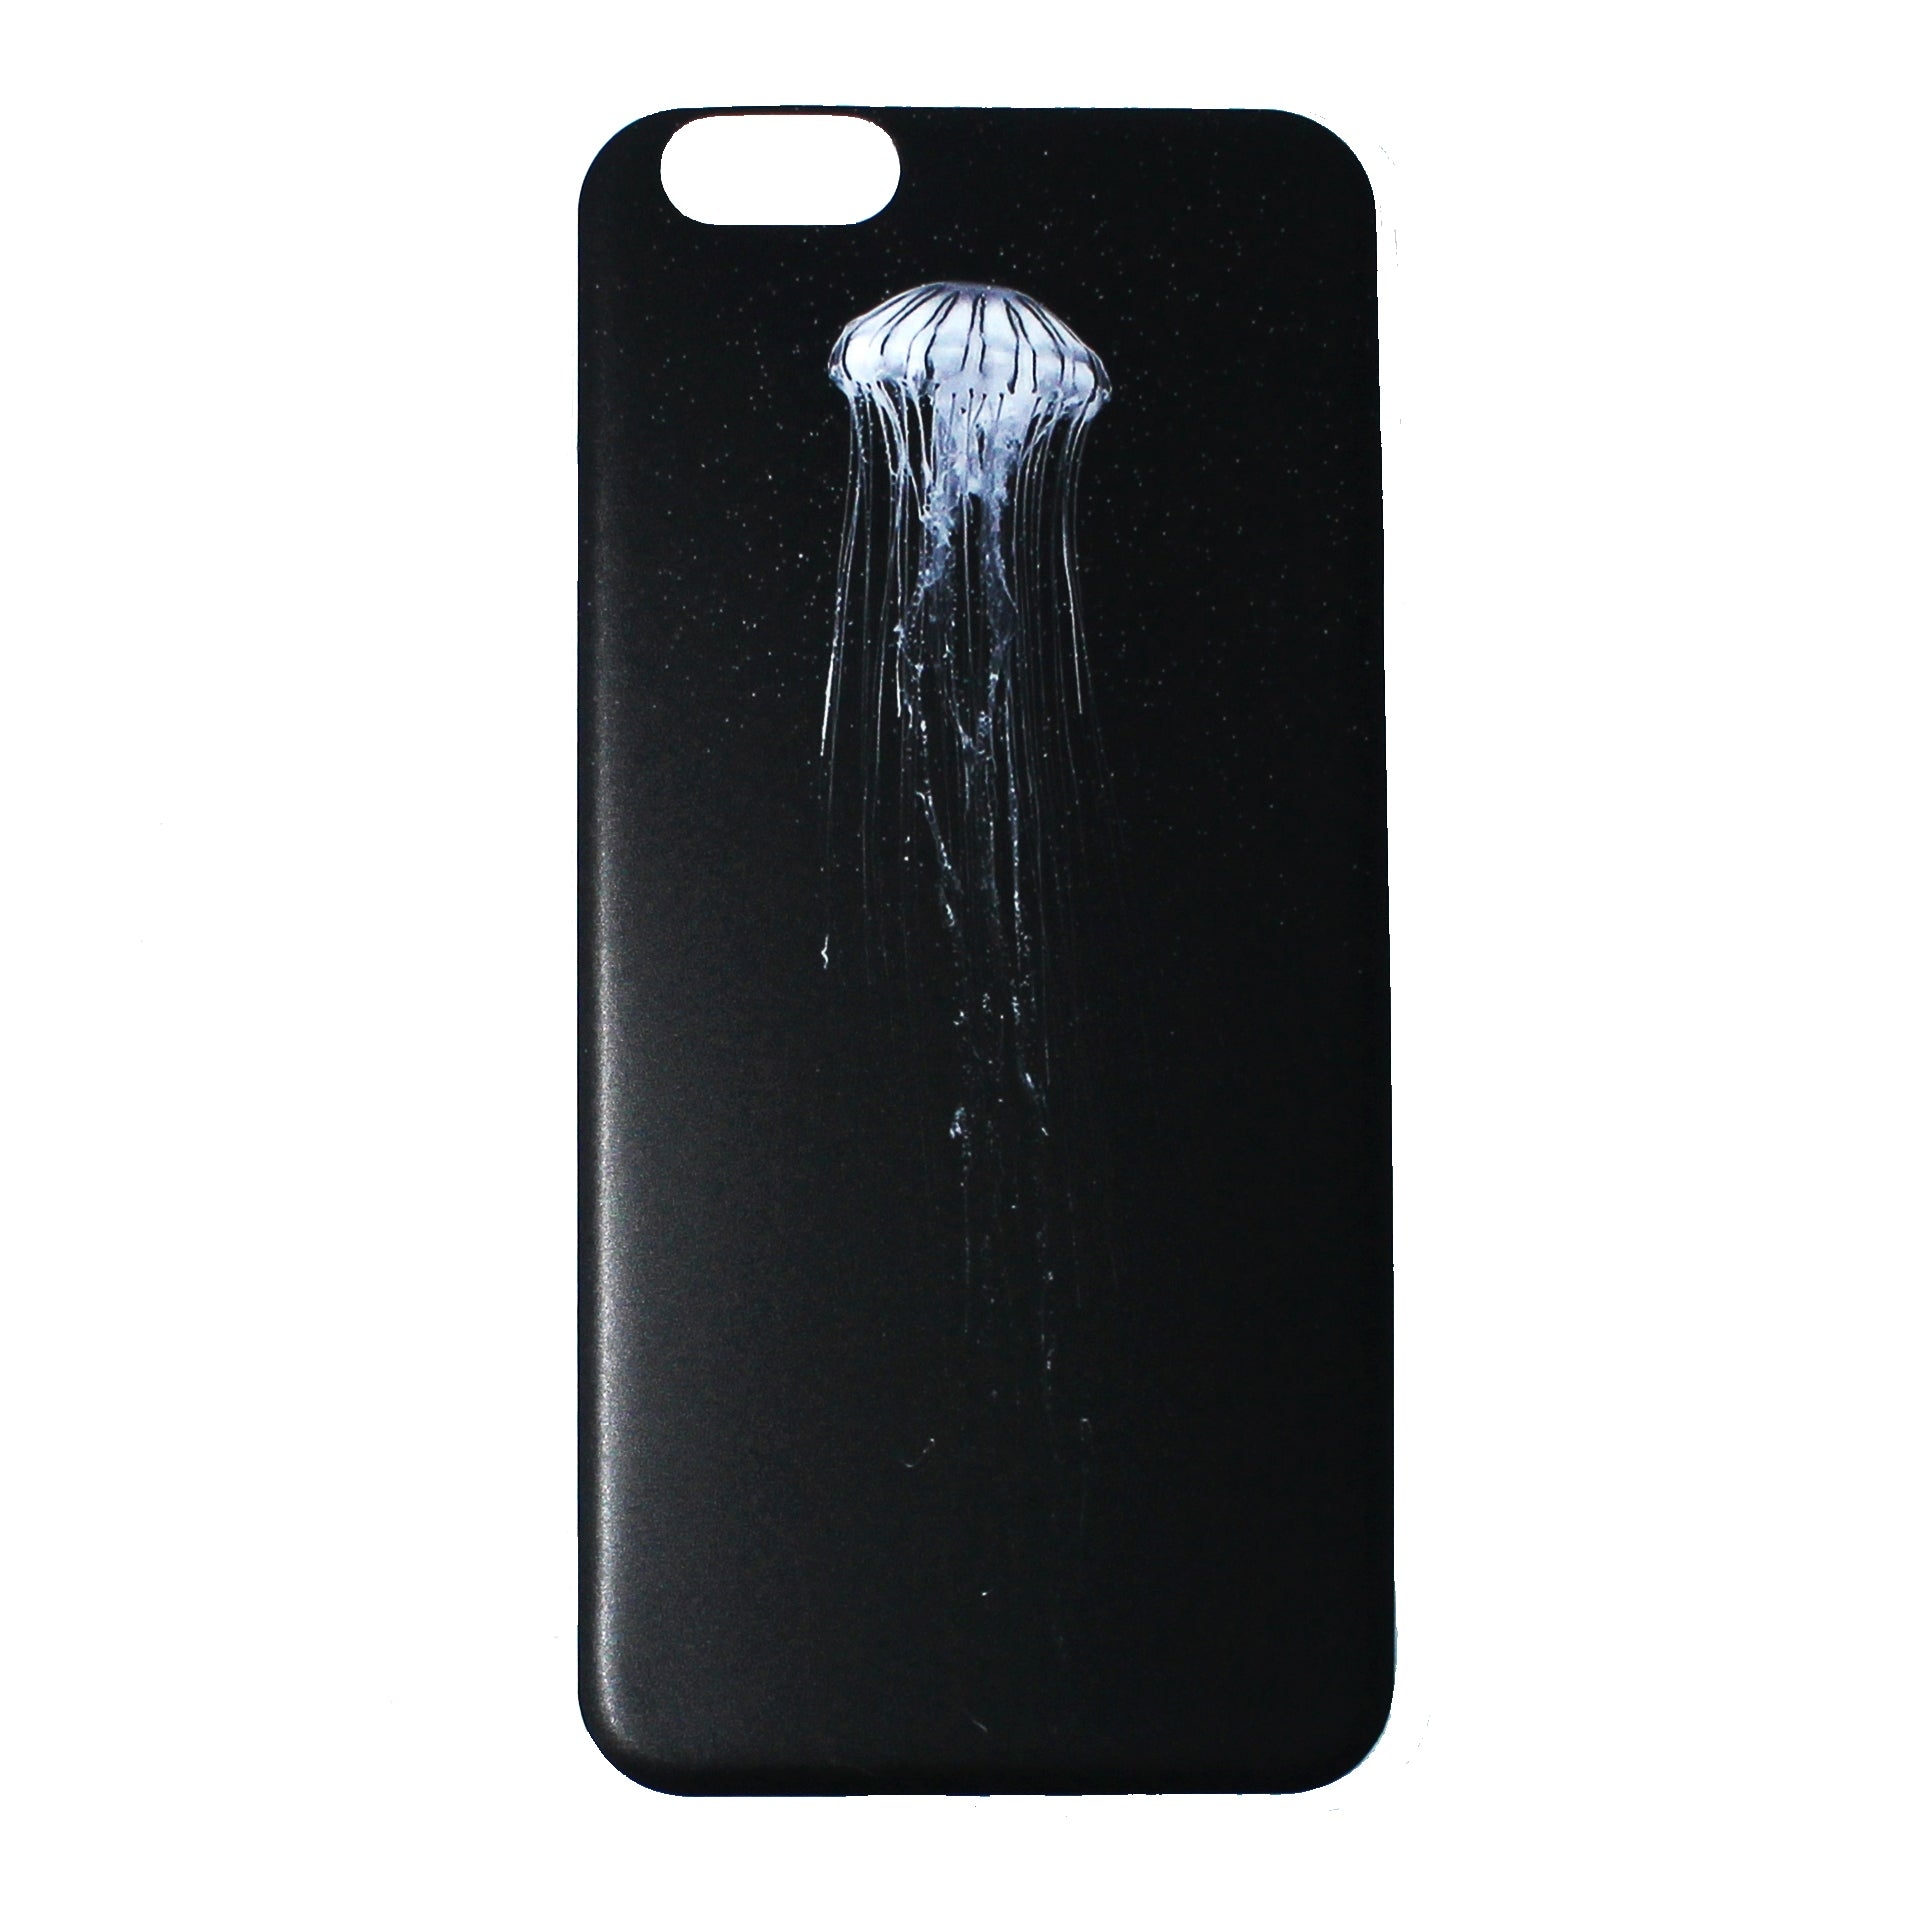 Jelly Fish Case ( iPhone 6 Plus)